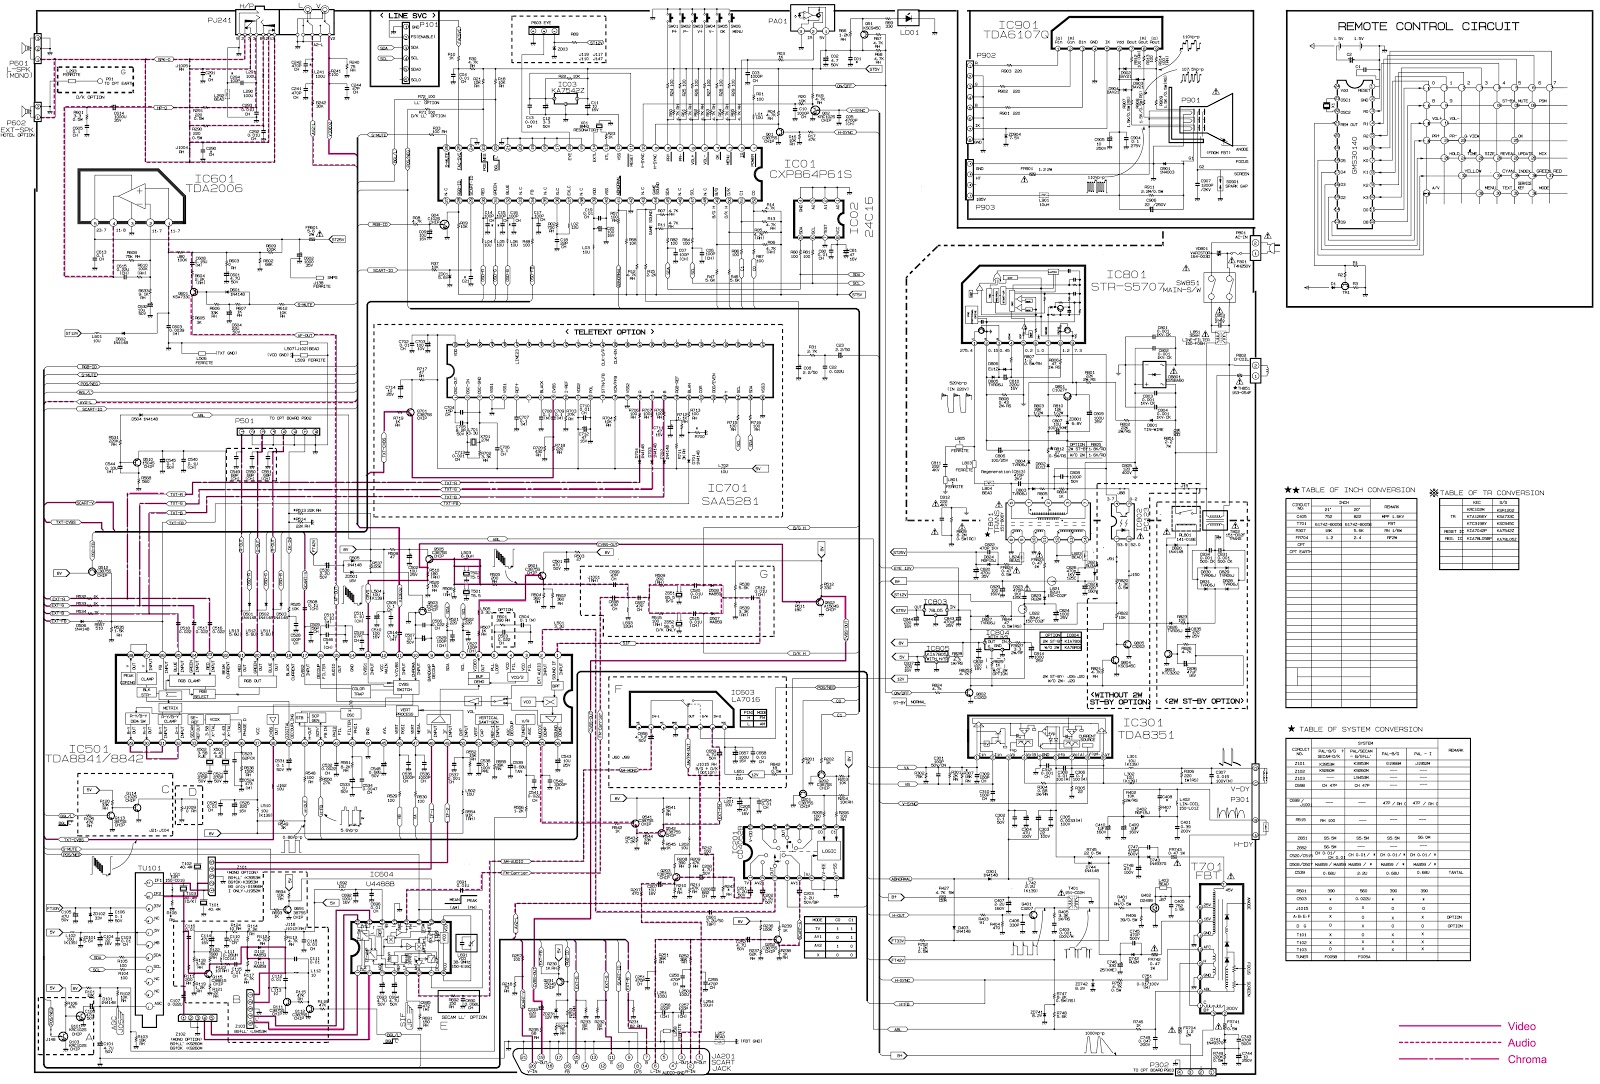 Schematic Diagrams: LG CB20T20X CRT TV – SchematicSchematic Diagrams - blogger